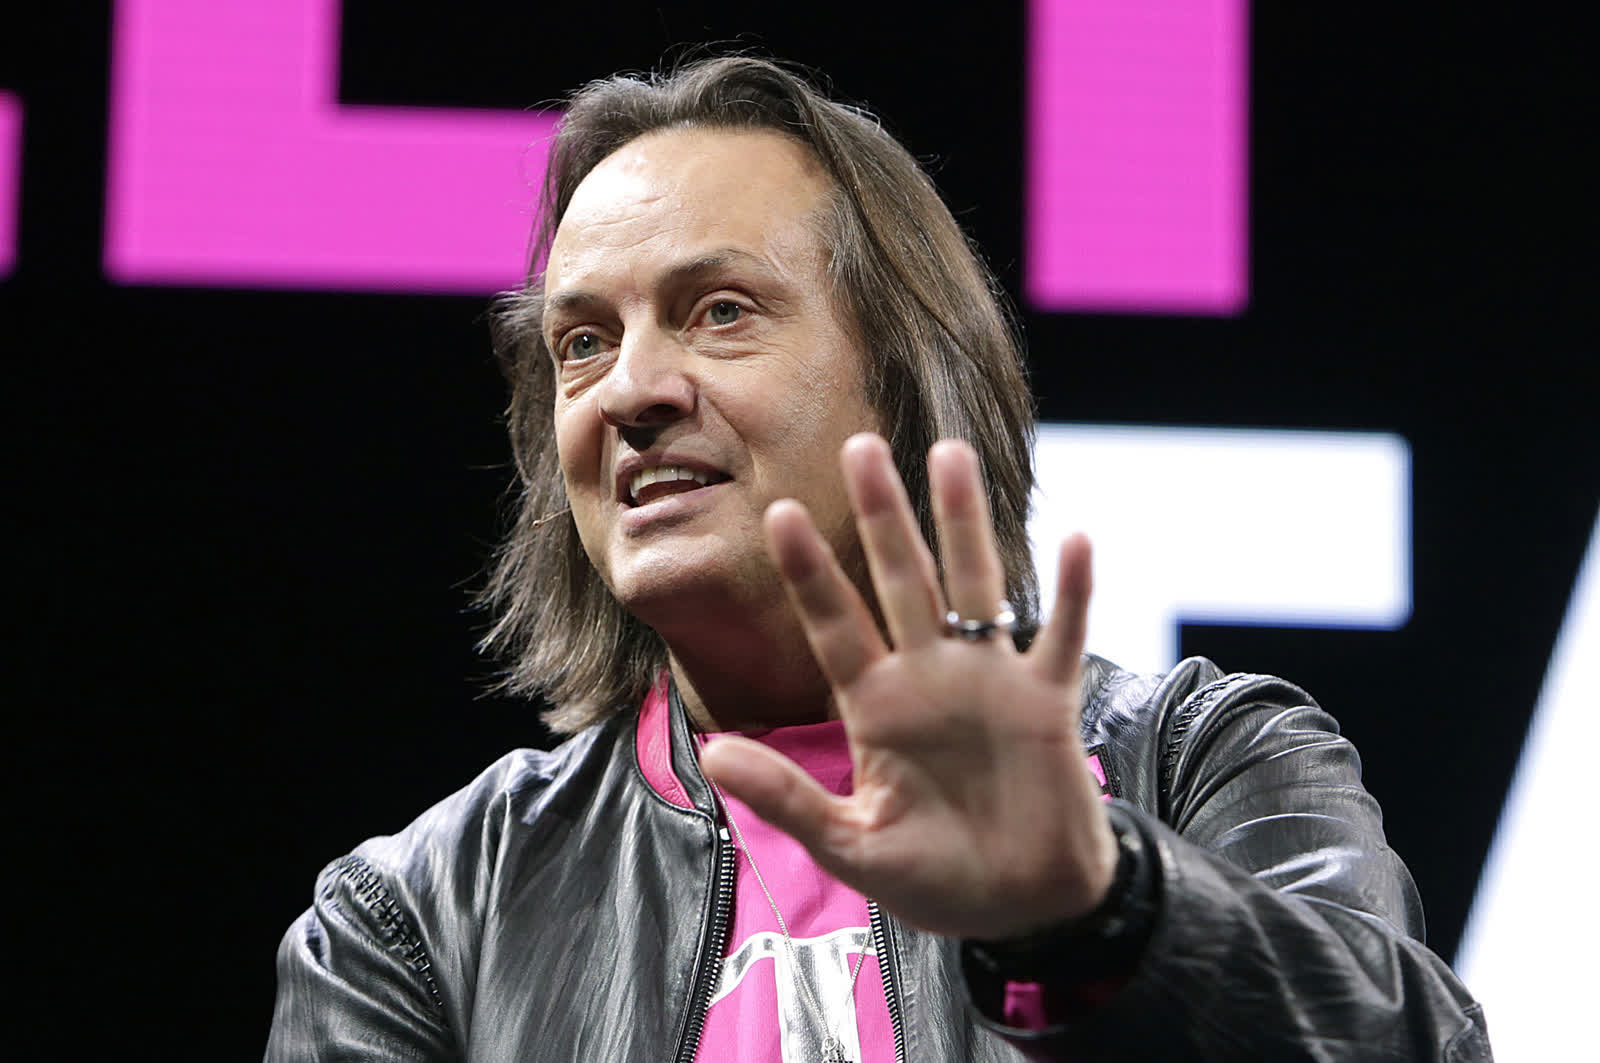 John Legere left T-Mobile with a severance package of over $136 million